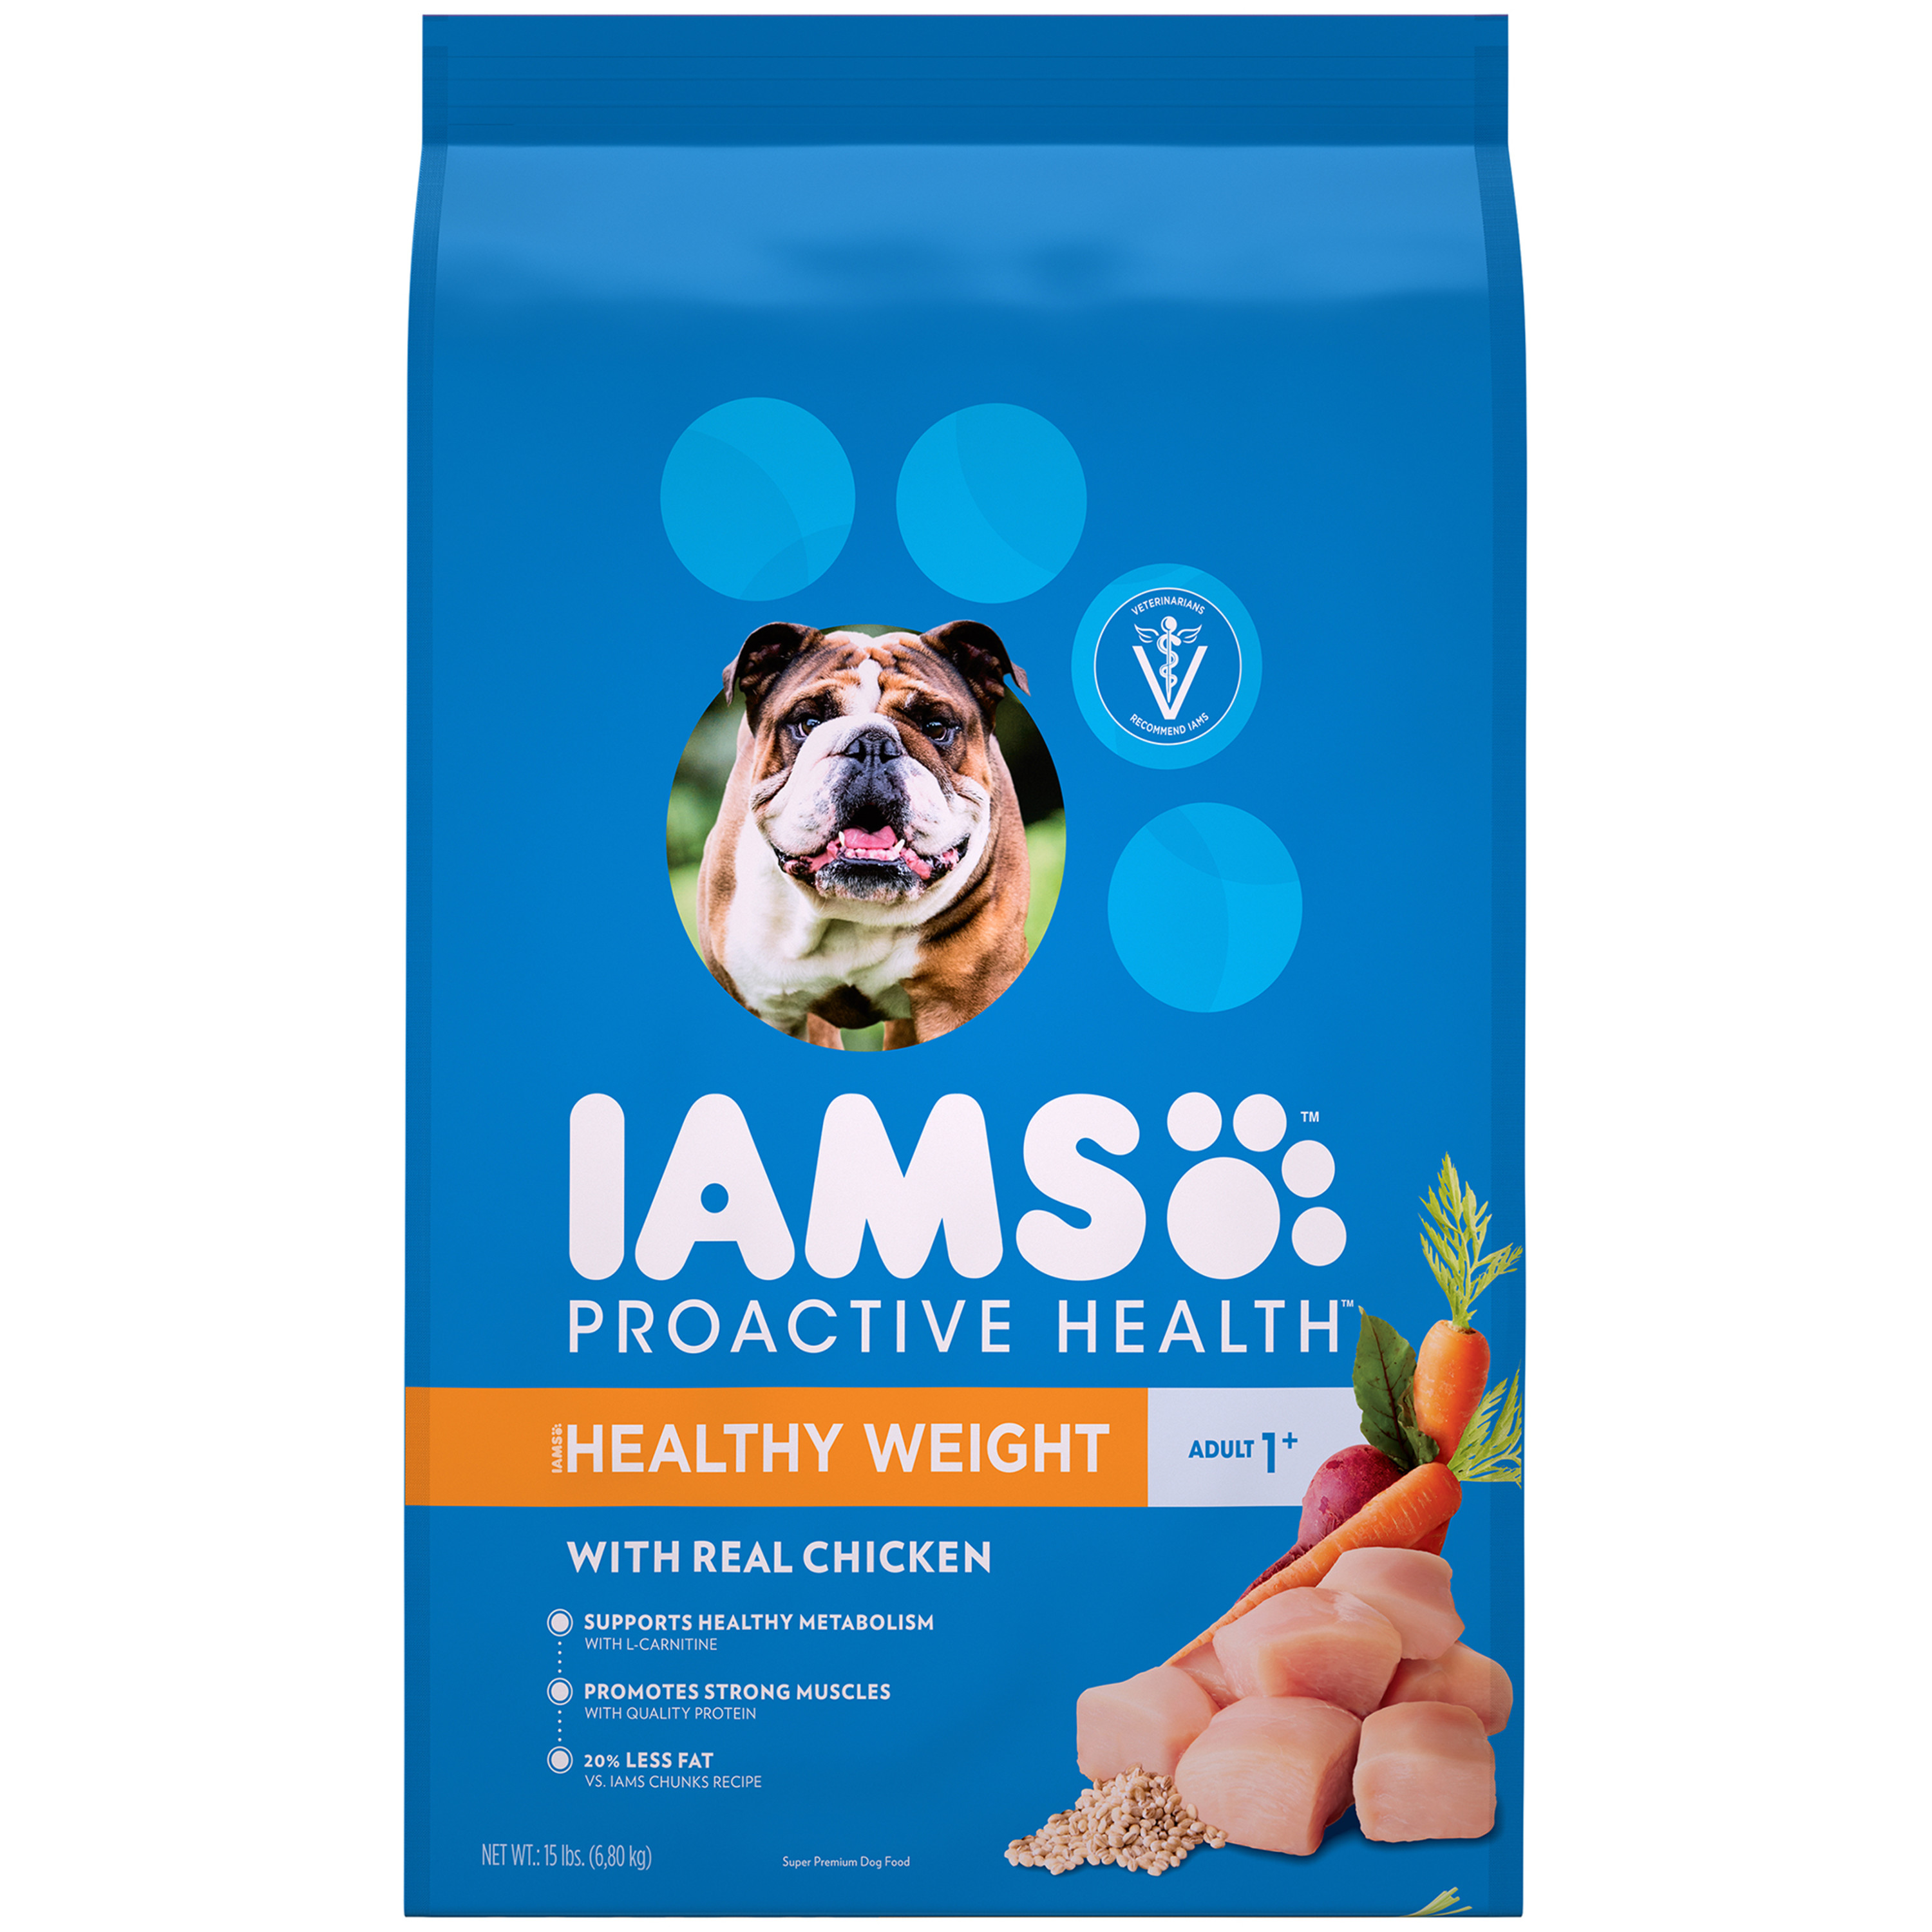 IAMS ProActive Health Healthy Weight Dry Dog Food for All Dogs – Chicken, 15 Pound Bag